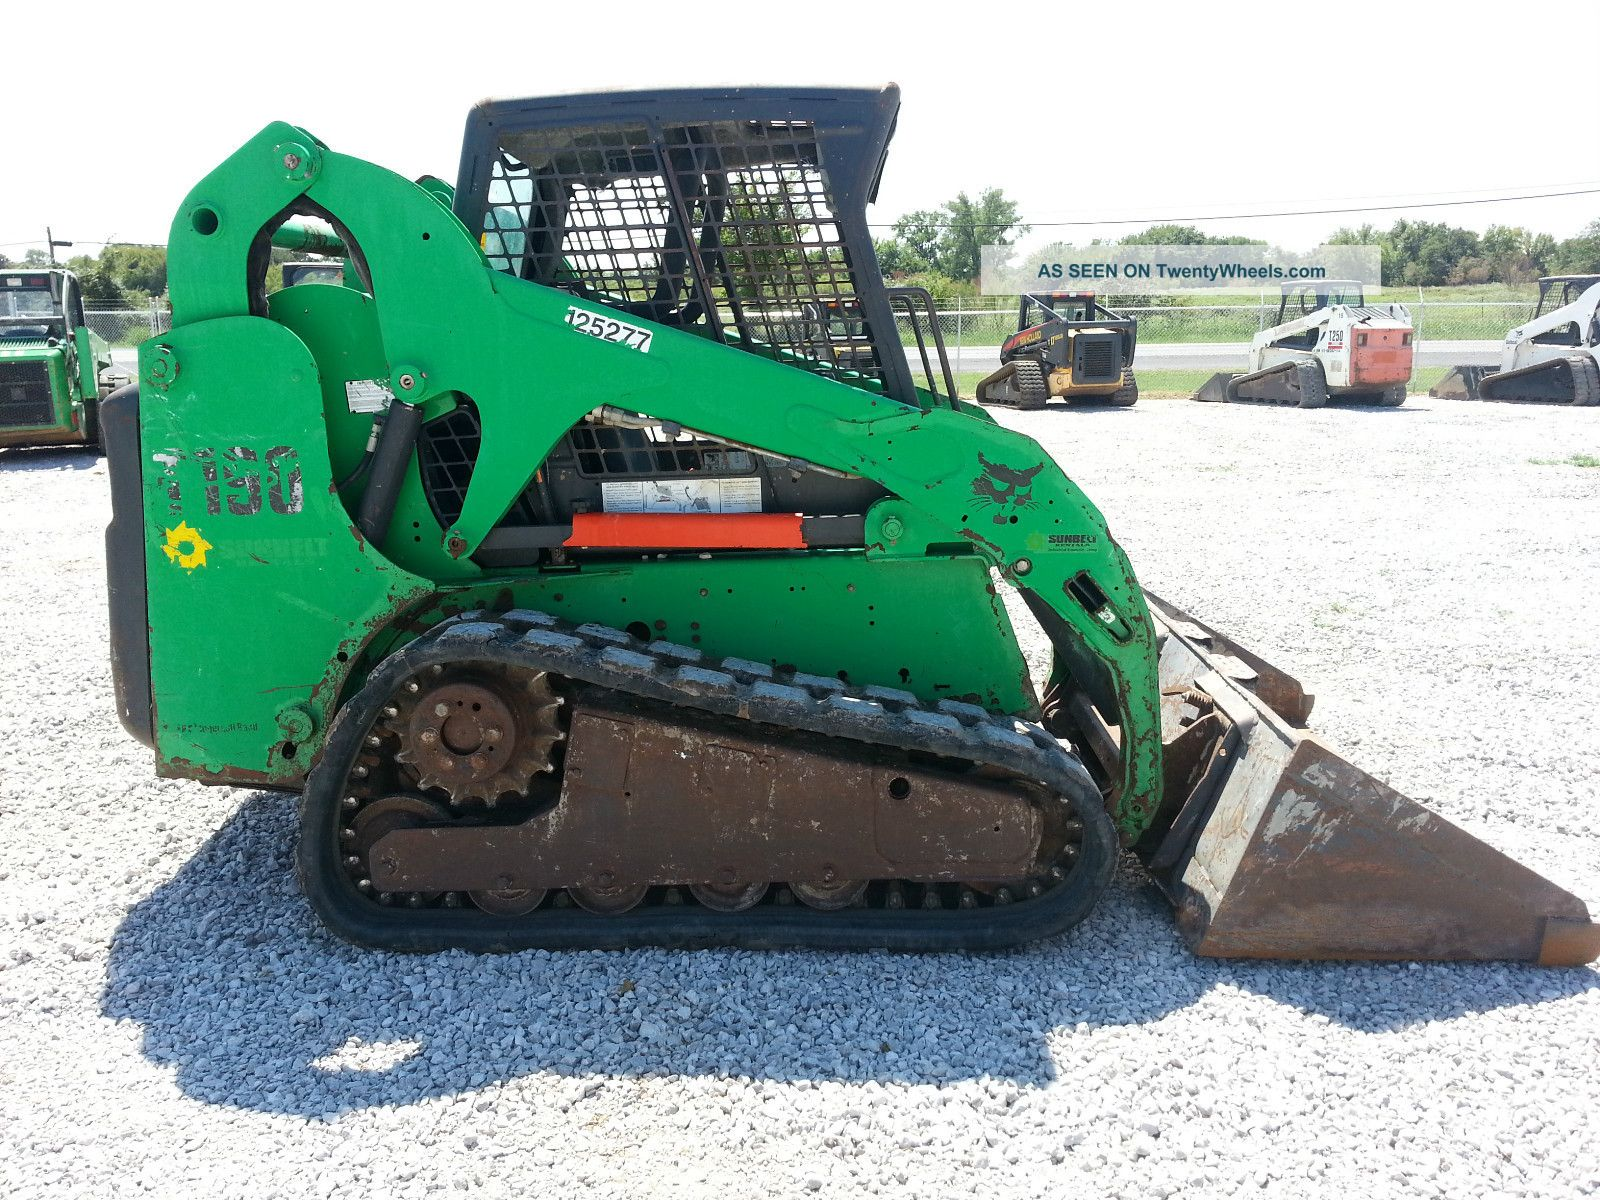 2007 Bobcat T190 Skid Steer Loader Skid Steer Loaders photo